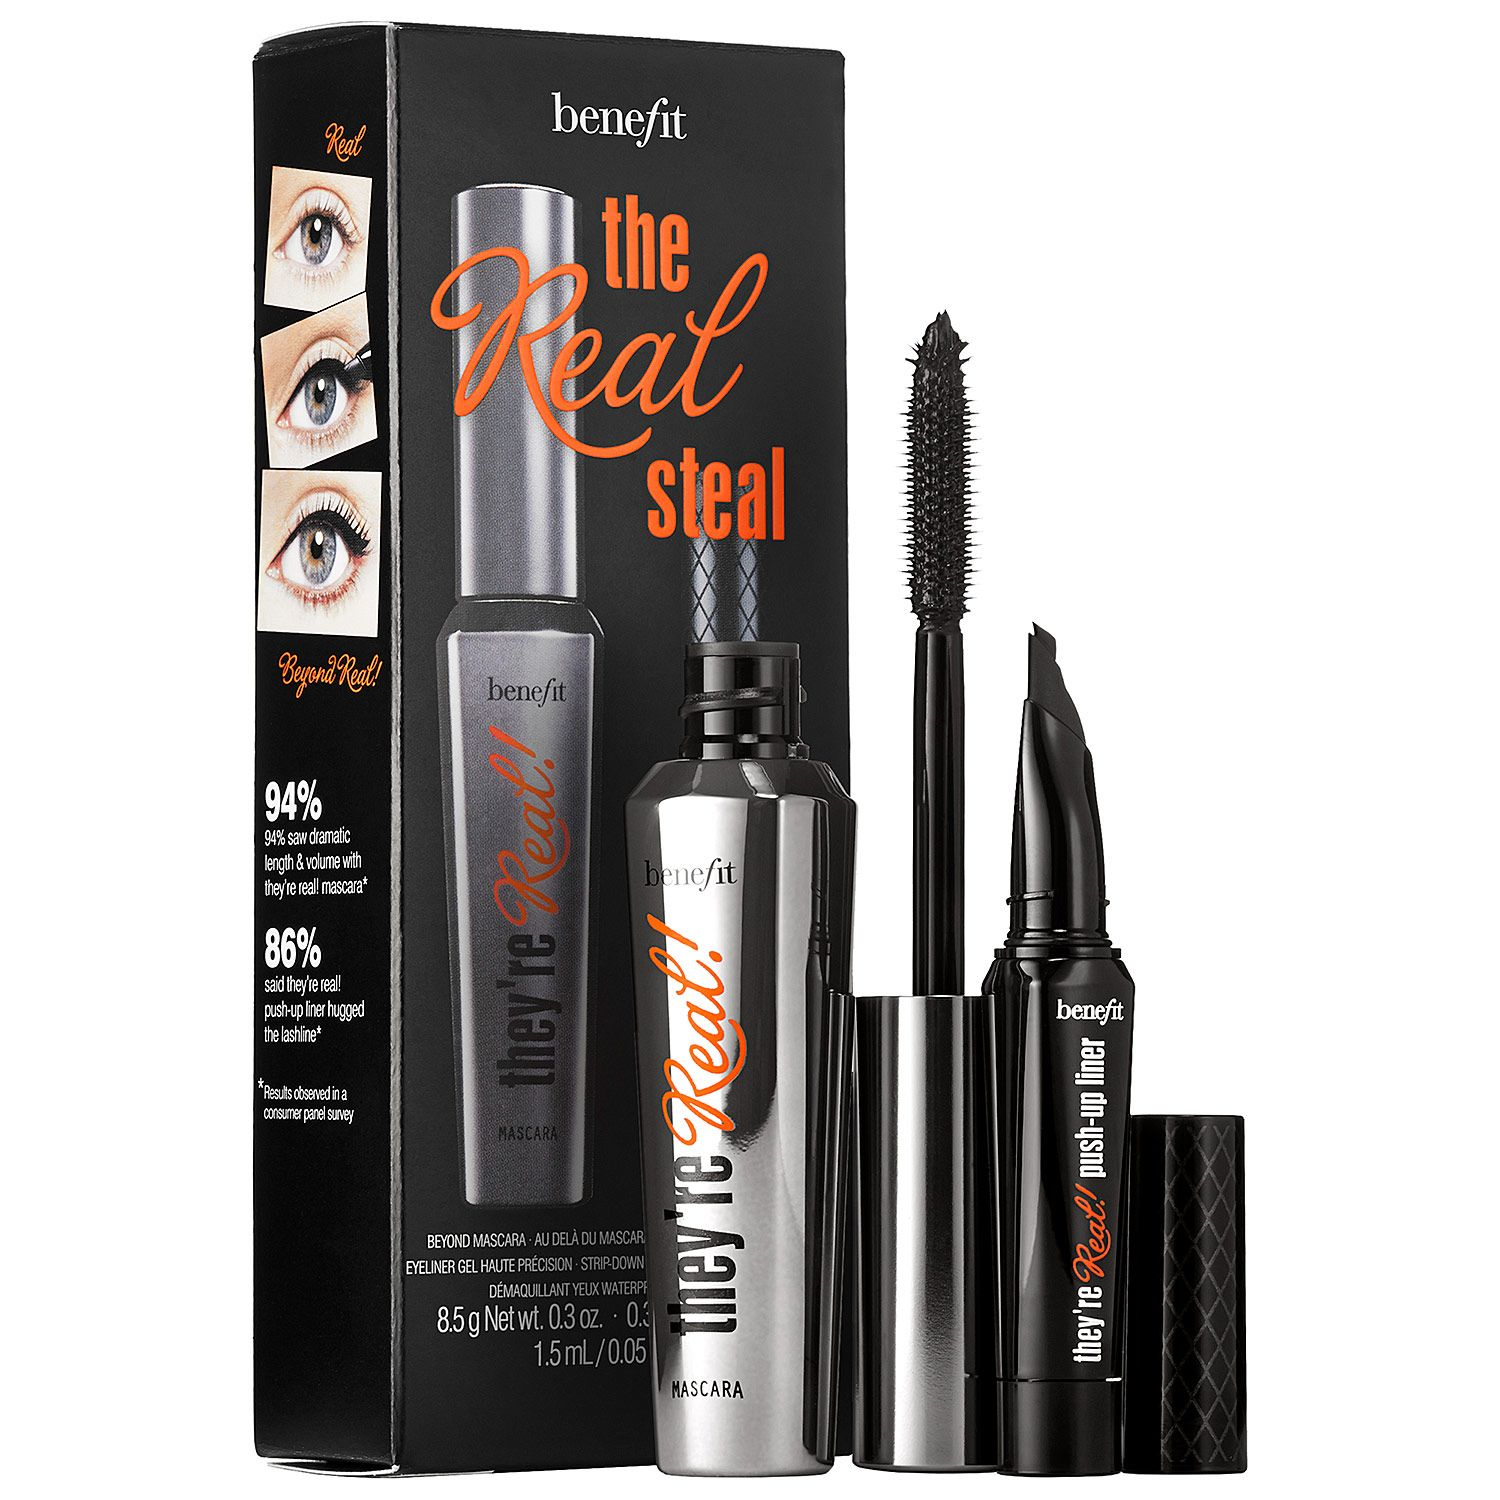 fc0f5dc8215 A limited-edition, eye makeup set featuring a full size They're Real!  Mascara, a mini They're Real! Push-Up Liner, and a They're Real! Remover  sample.